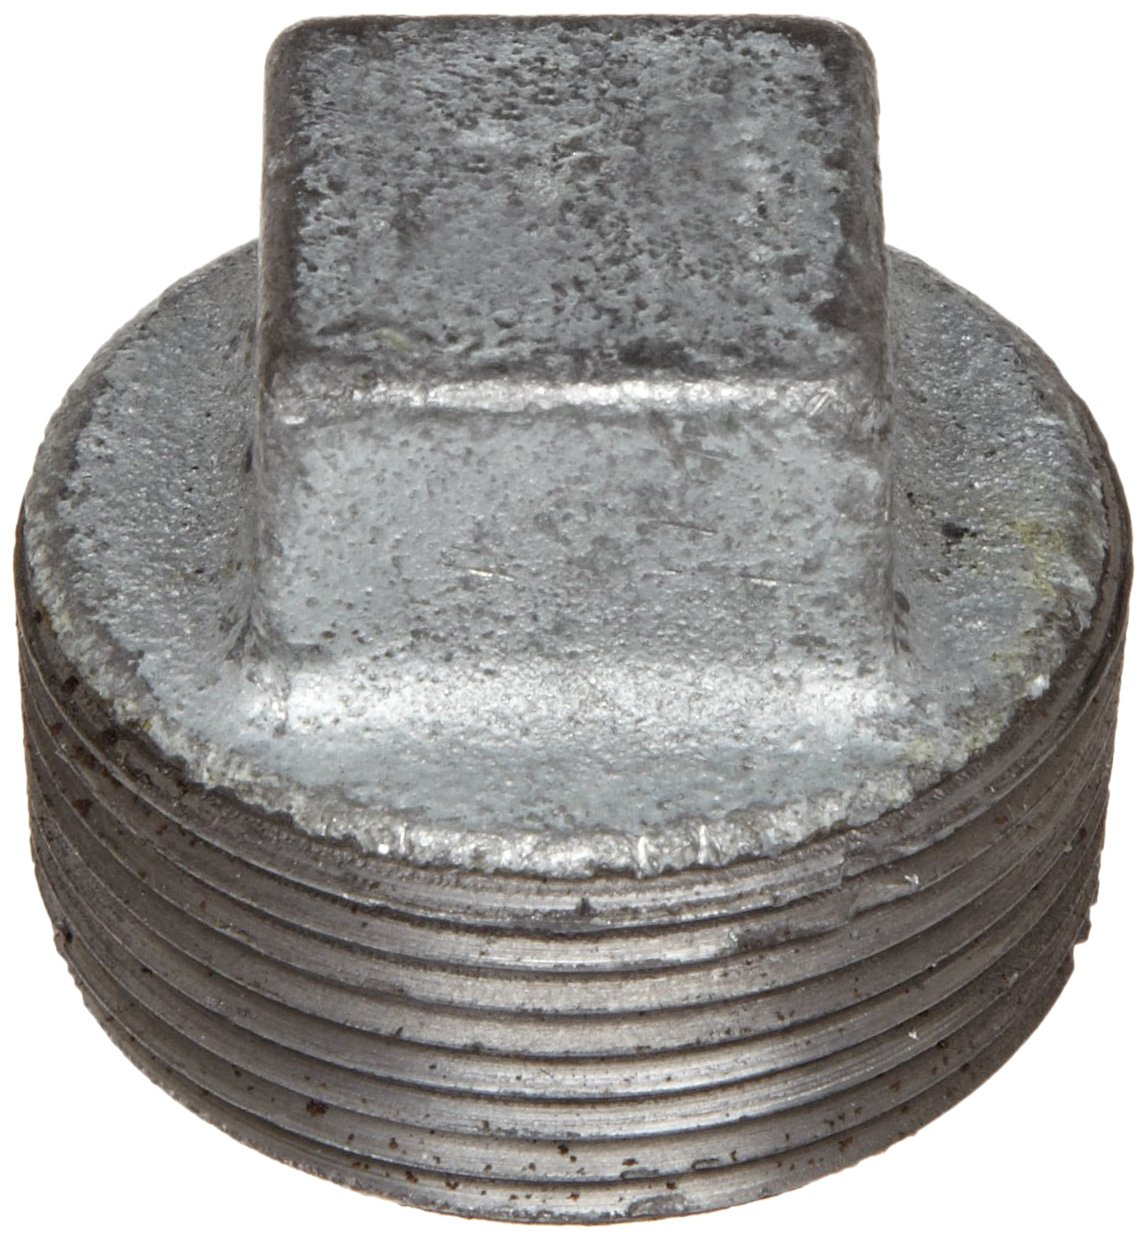 Anvil 8700159901, Malleable Iron Pipe Fitting, Square Head Plug, 3/4 NPT Male, Galvanized Finish by Anvil International ANVIL INTERNATIONAL INC